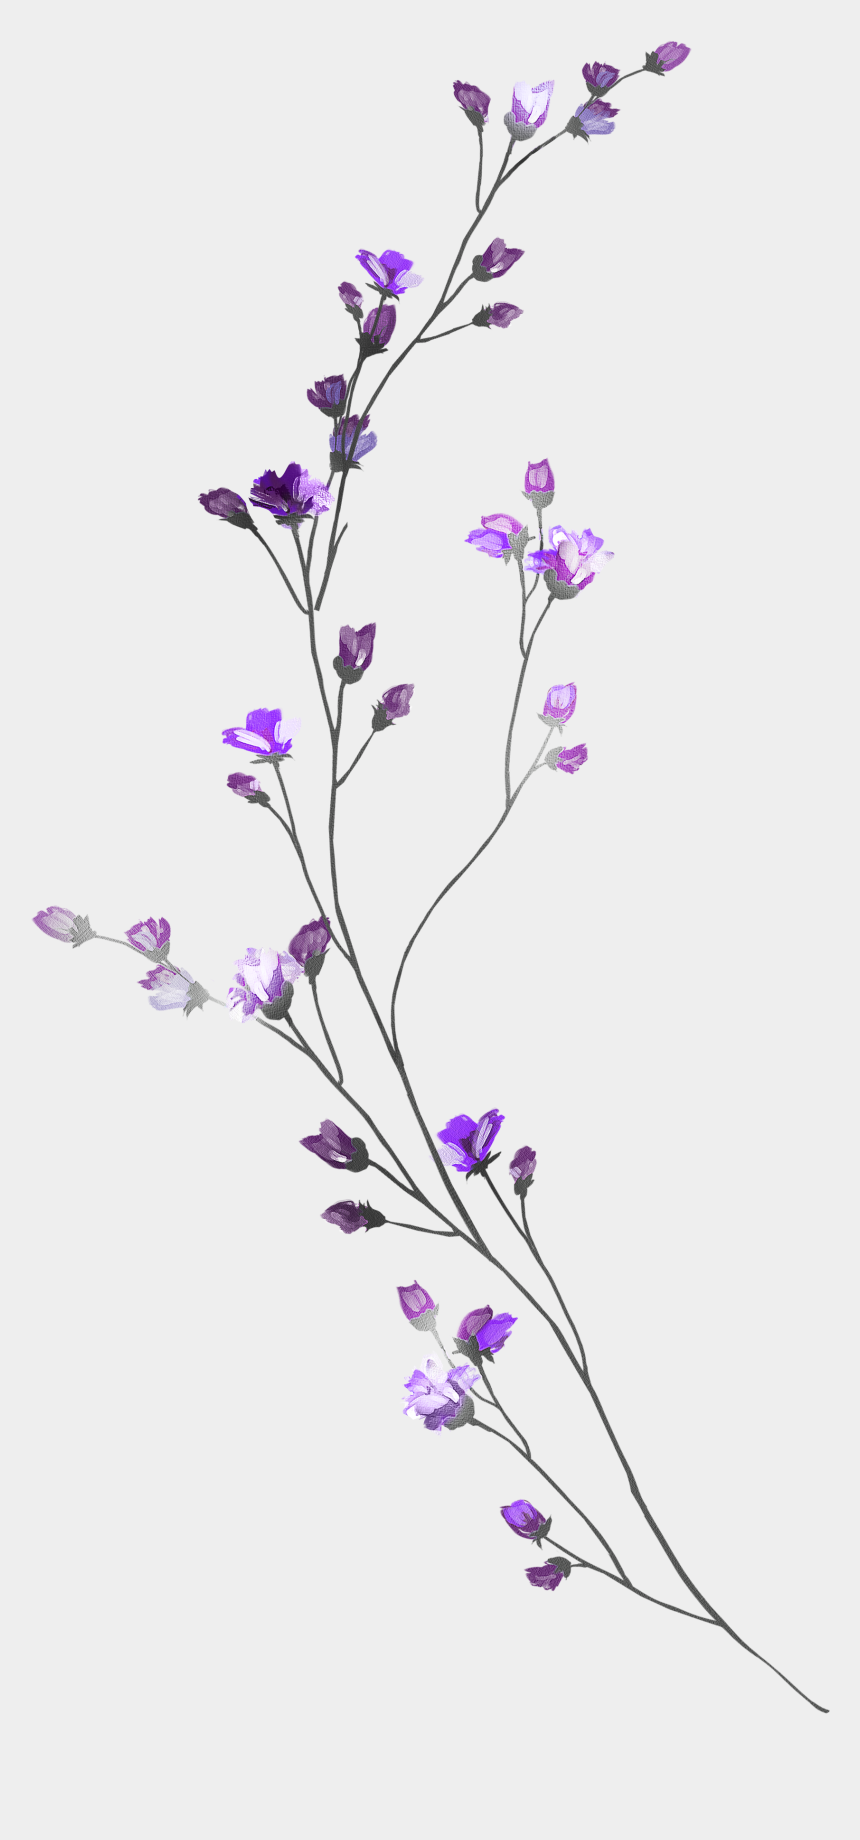 lavendar clipart, Cartoons - Pin By Teresa Benedict On Free Flowers And Leaves In - Watercolor Painting